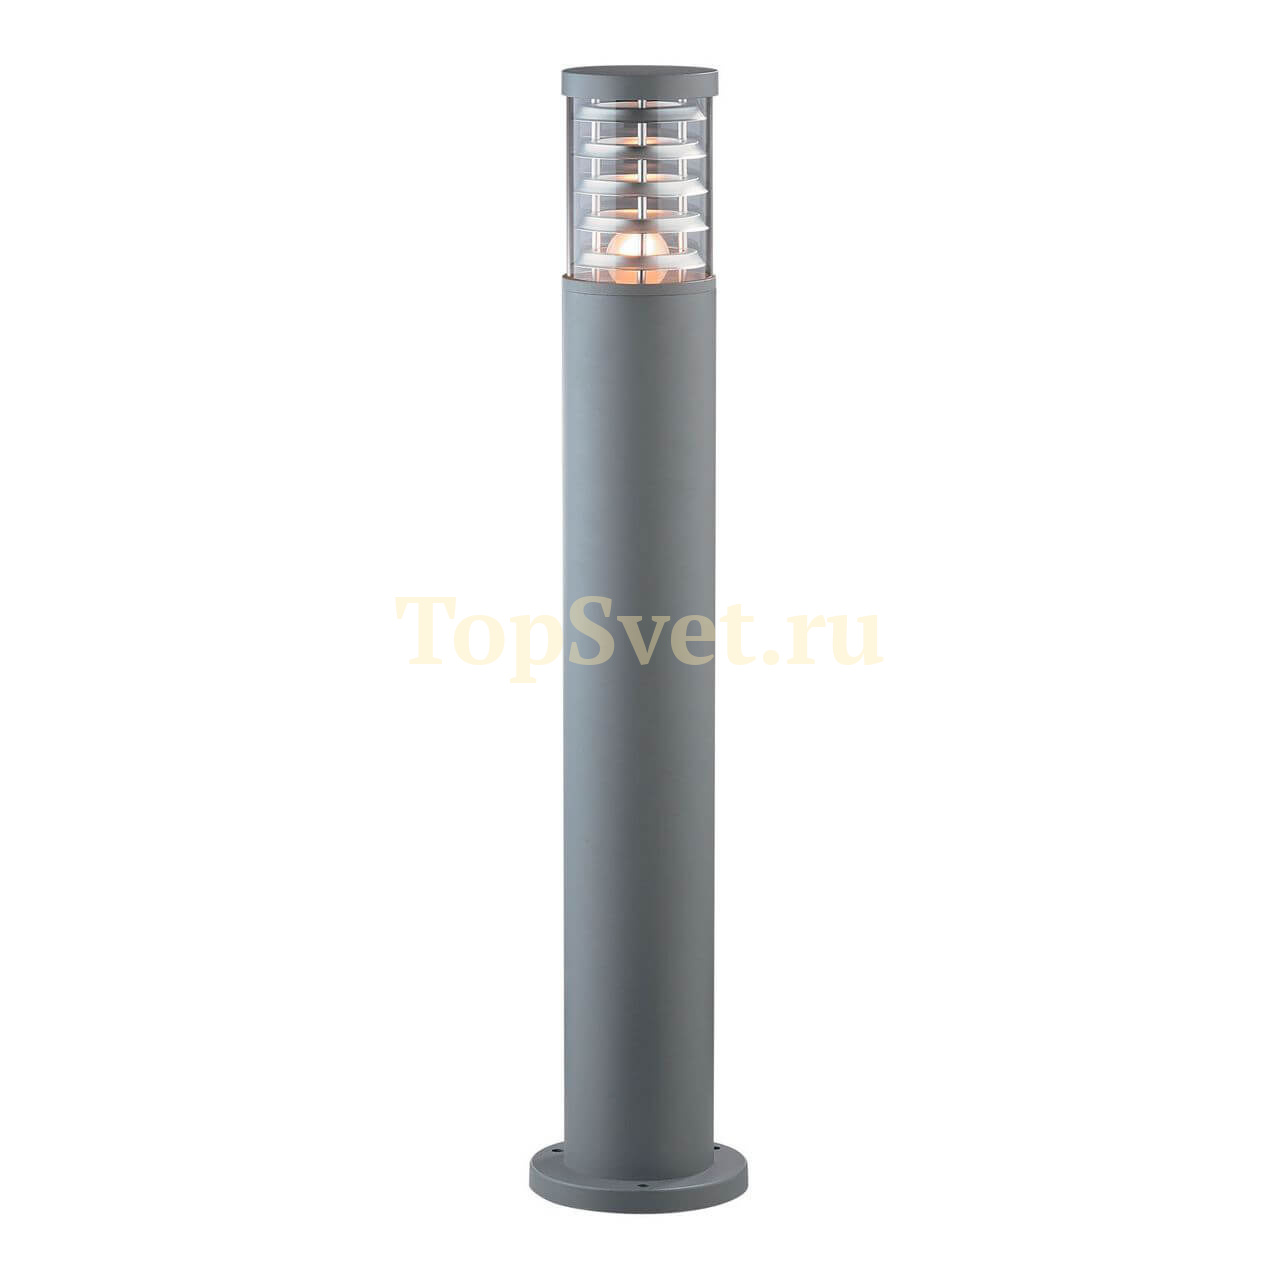 Tronco PT1 Big Grigio Ideal Lux